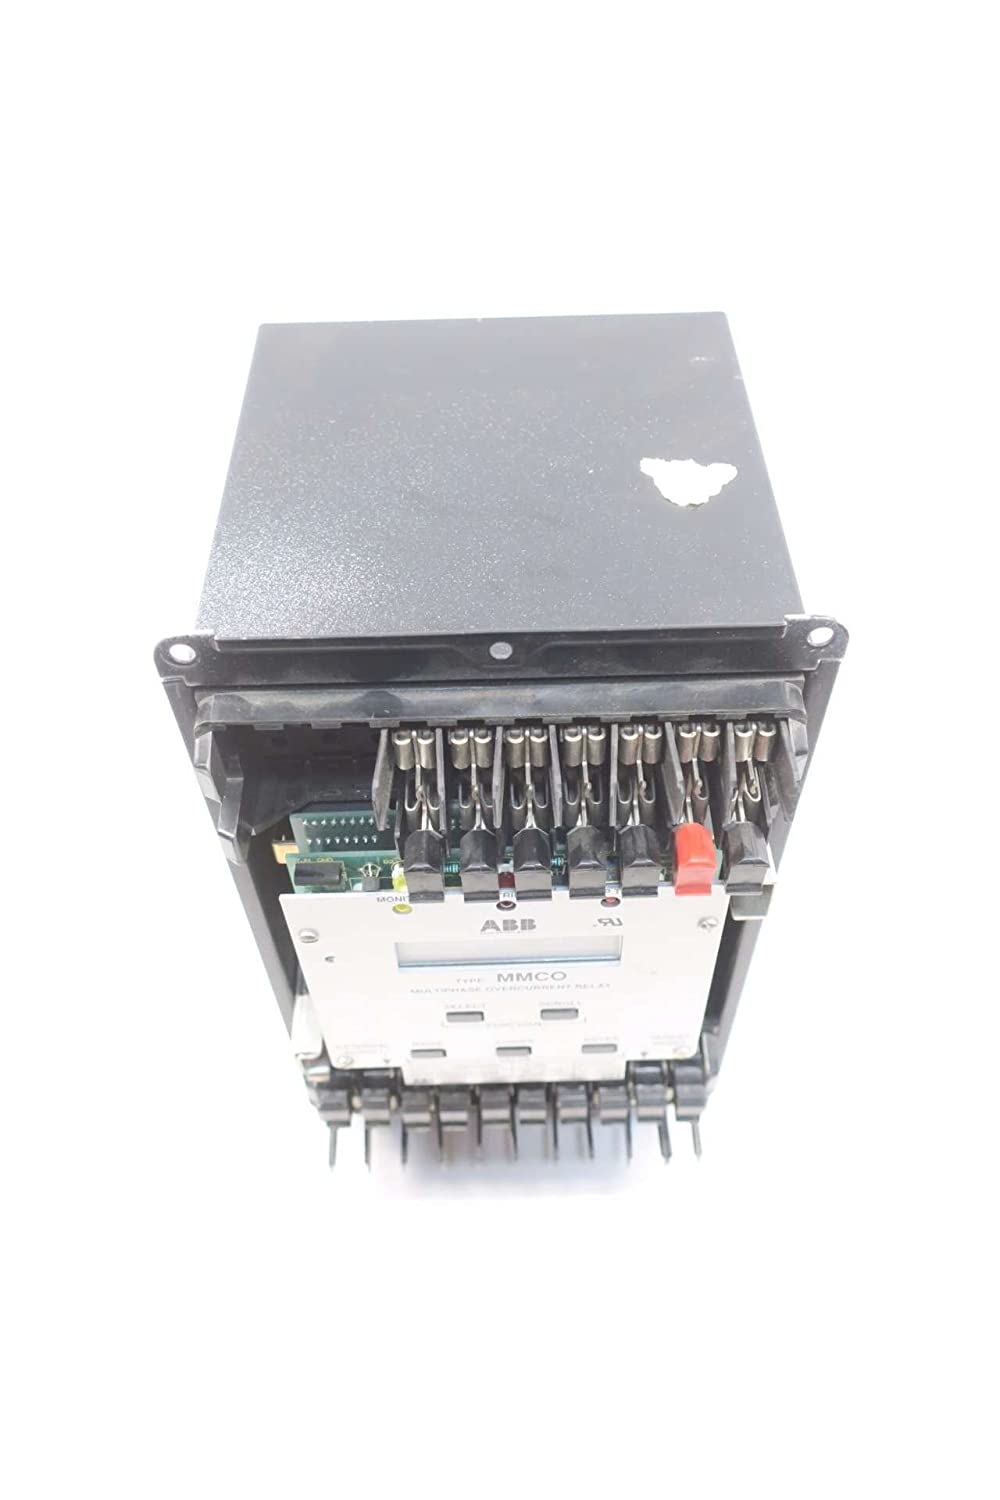 Abb Mmzz5z3gc1 Mmco Multiphase Overcurrent Relay 48 125v Dc 5a Amp D580827 Industrial Scientific